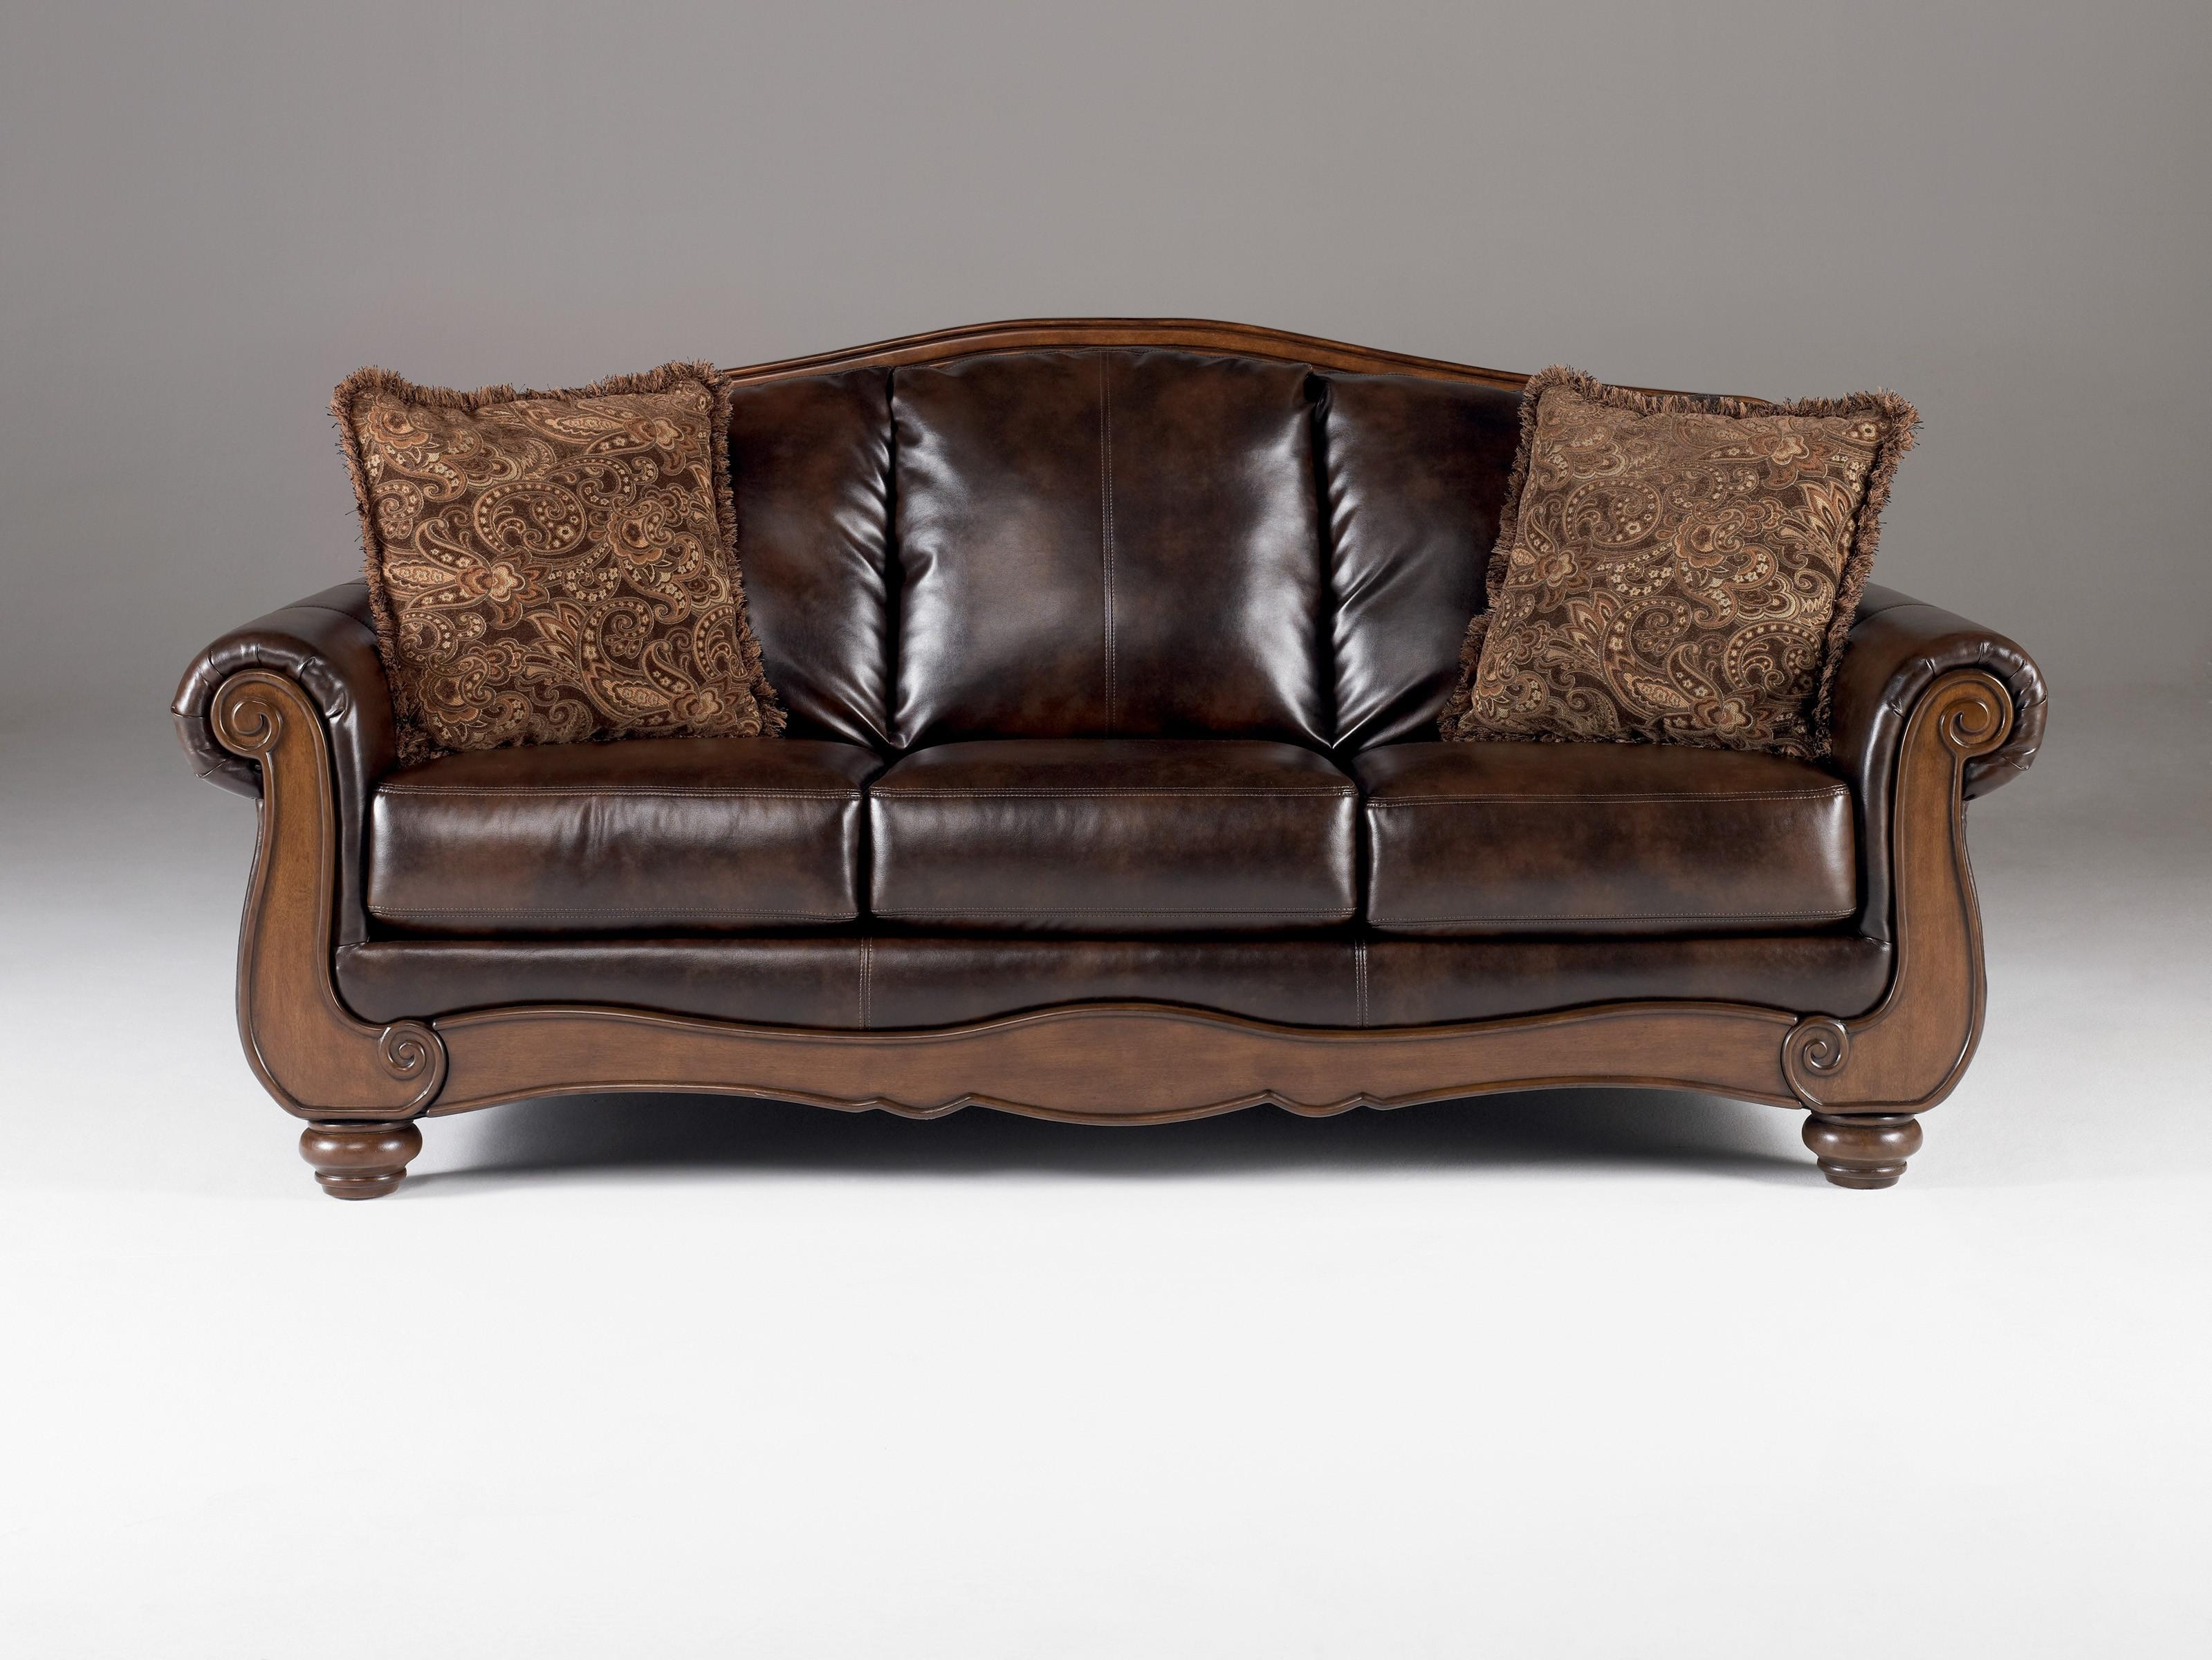 Barcelona Antique 553  Sofa Within Antique Sofa Chairs (Image 6 of 20)